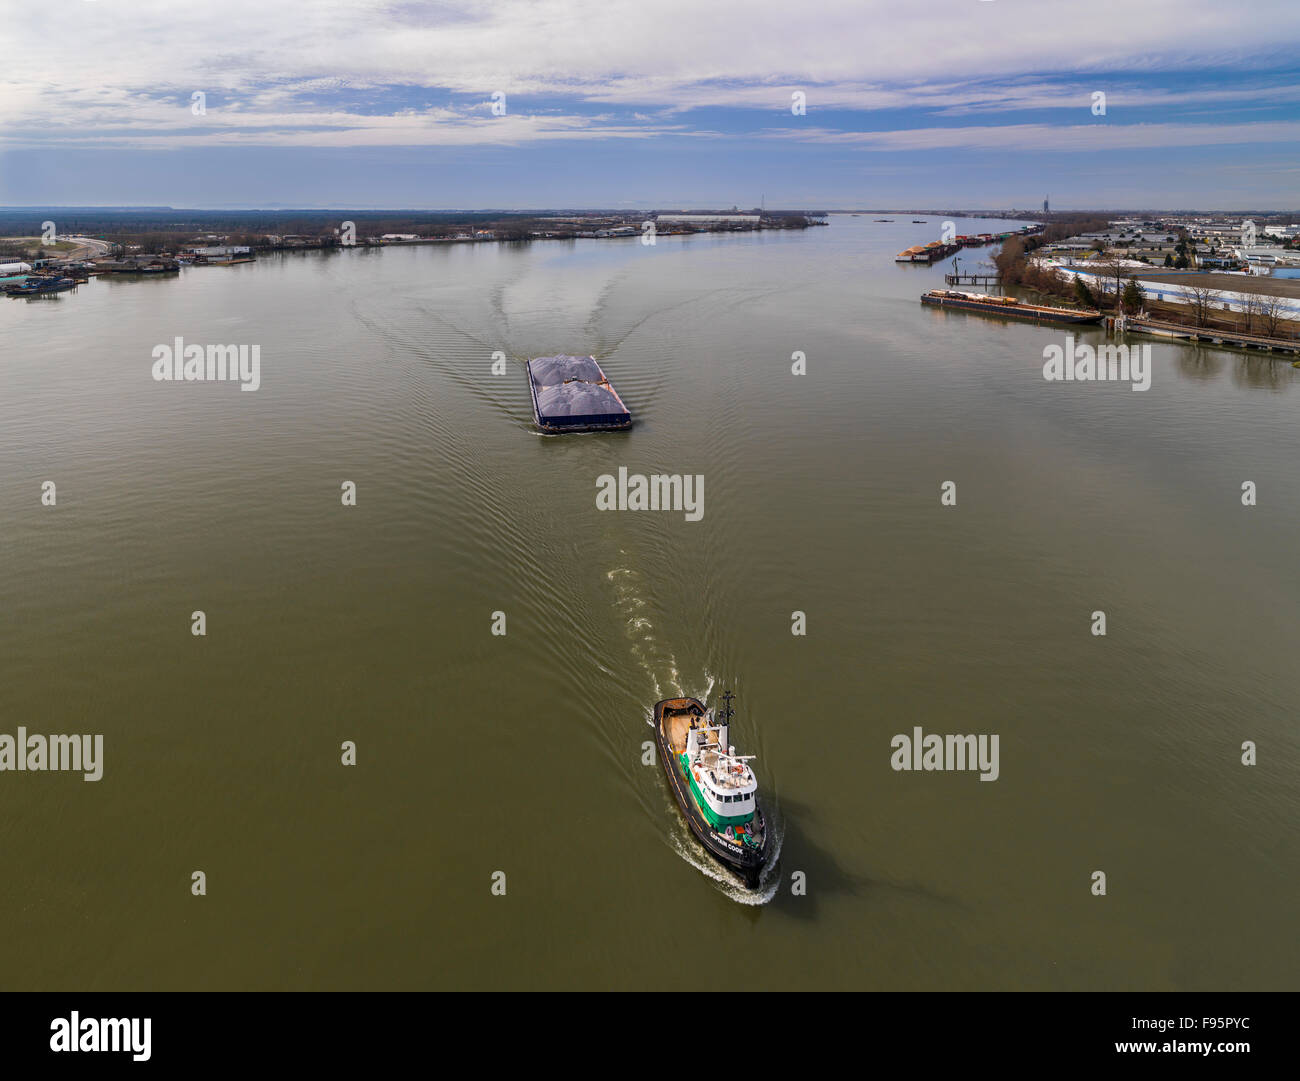 Tugboat pulling barge full of gravel up the Fraser River - Stock Image